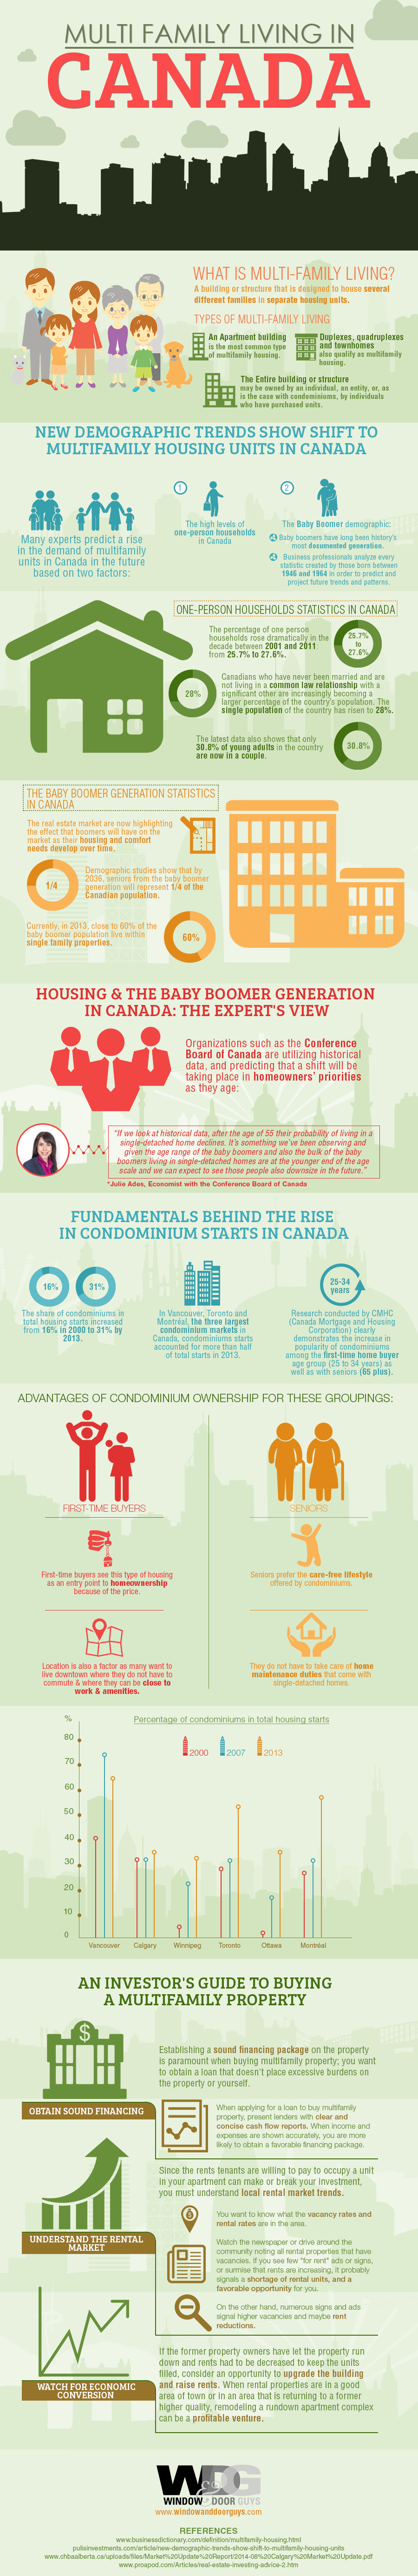 The Rise of Multi-Family Living in Canada